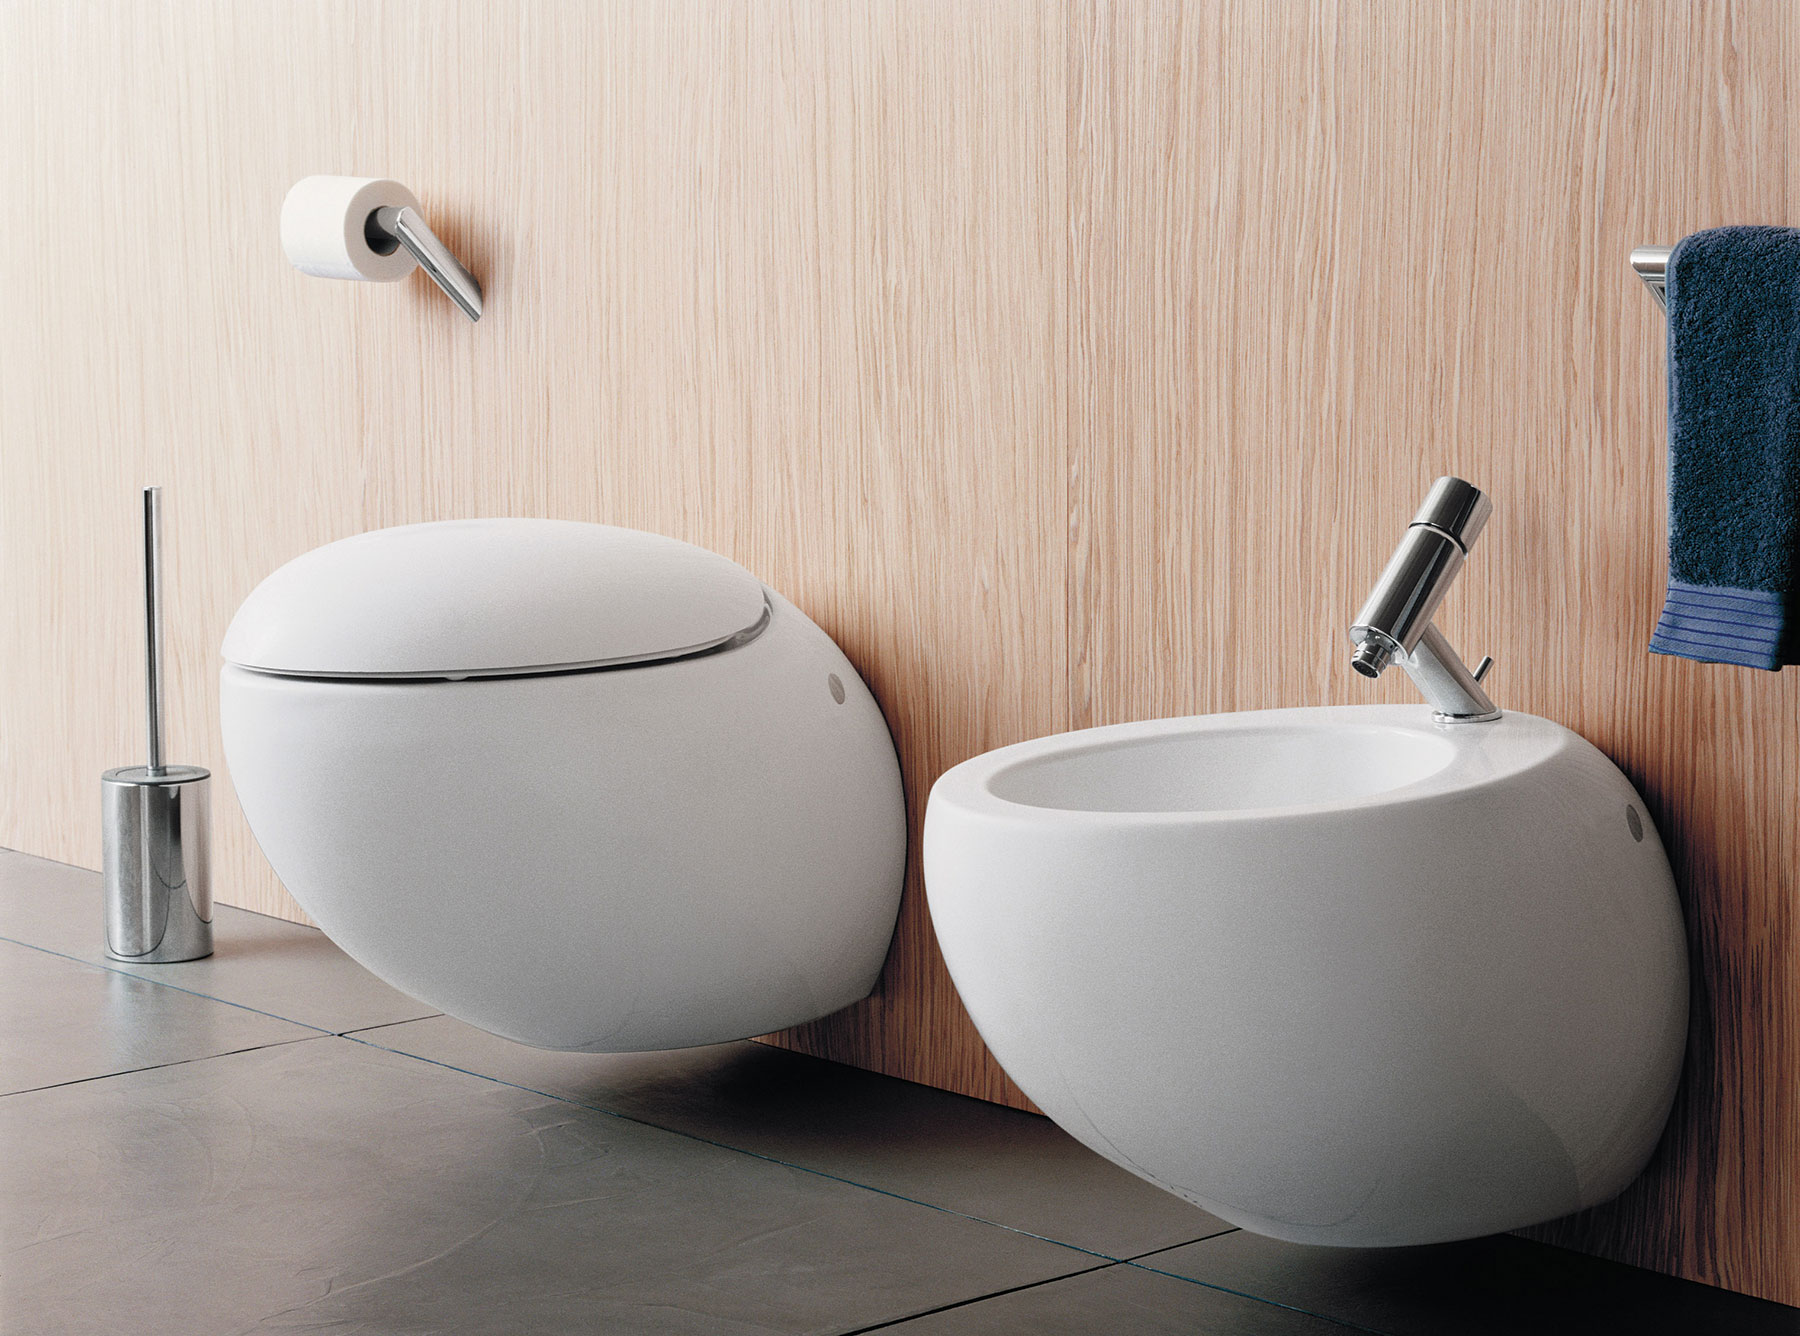 Alessi One Wall Mount Bidet first image